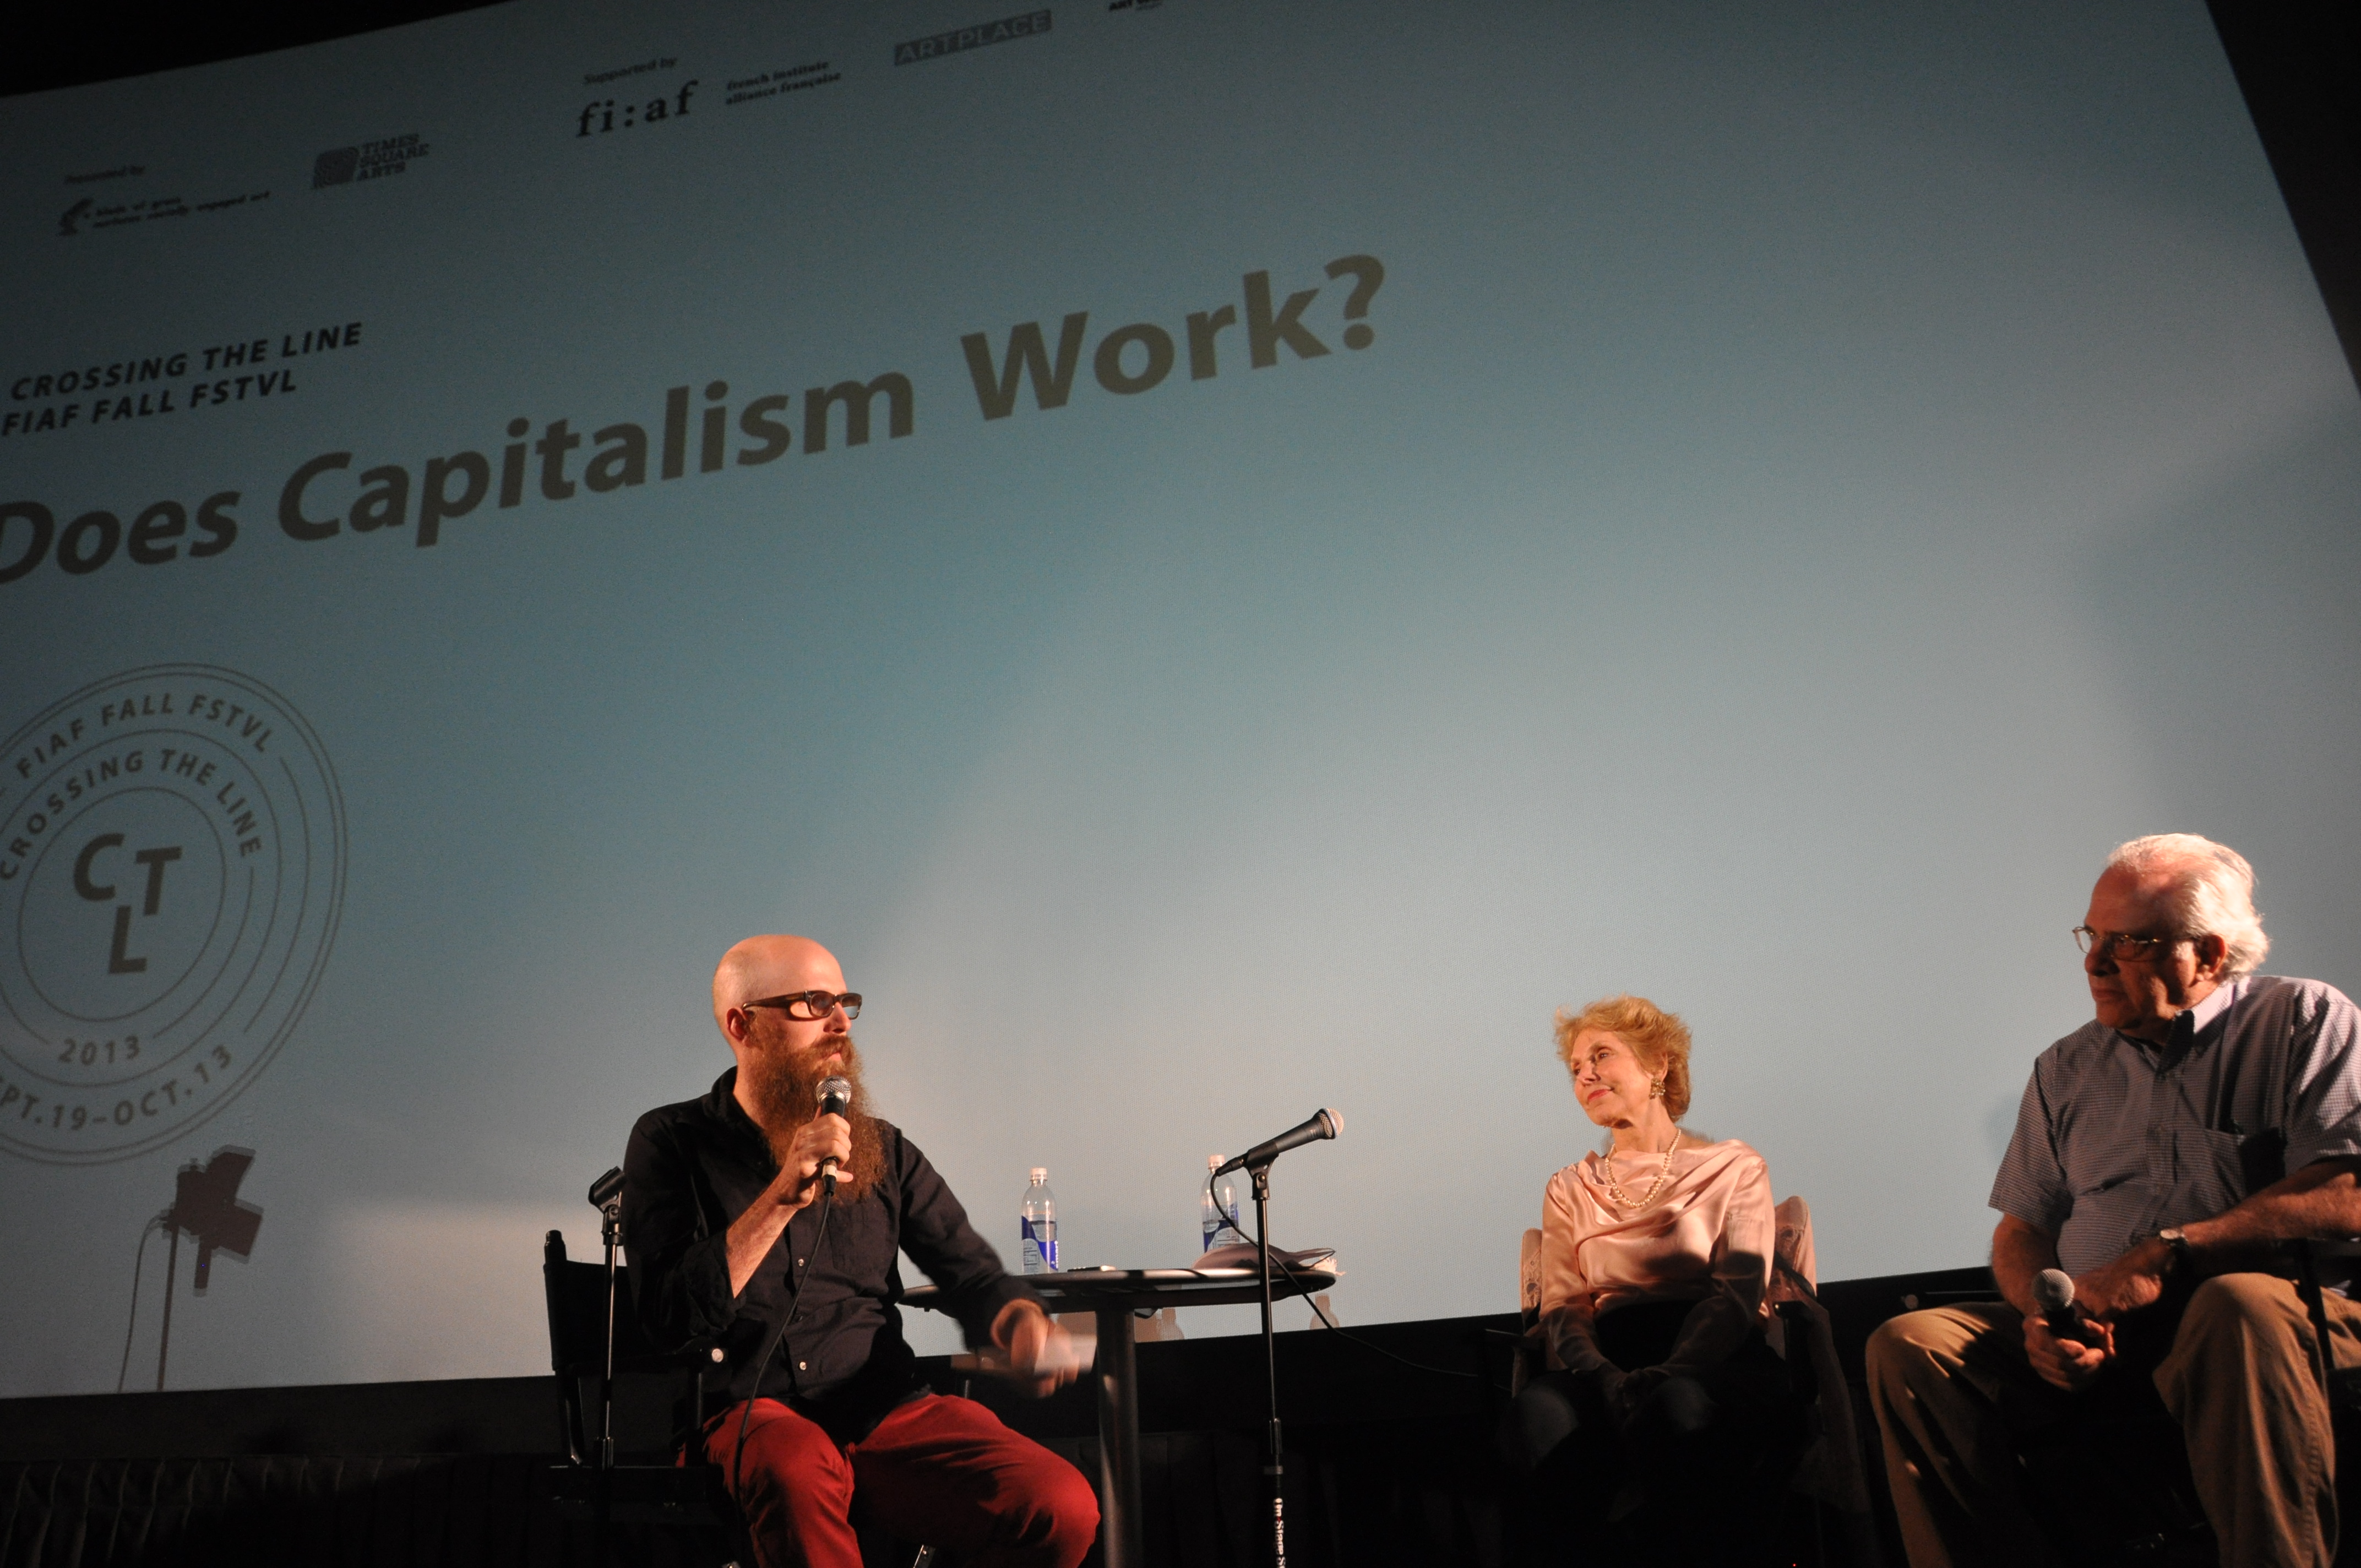 steve lambert, does capitalism work for me, amc empire 25